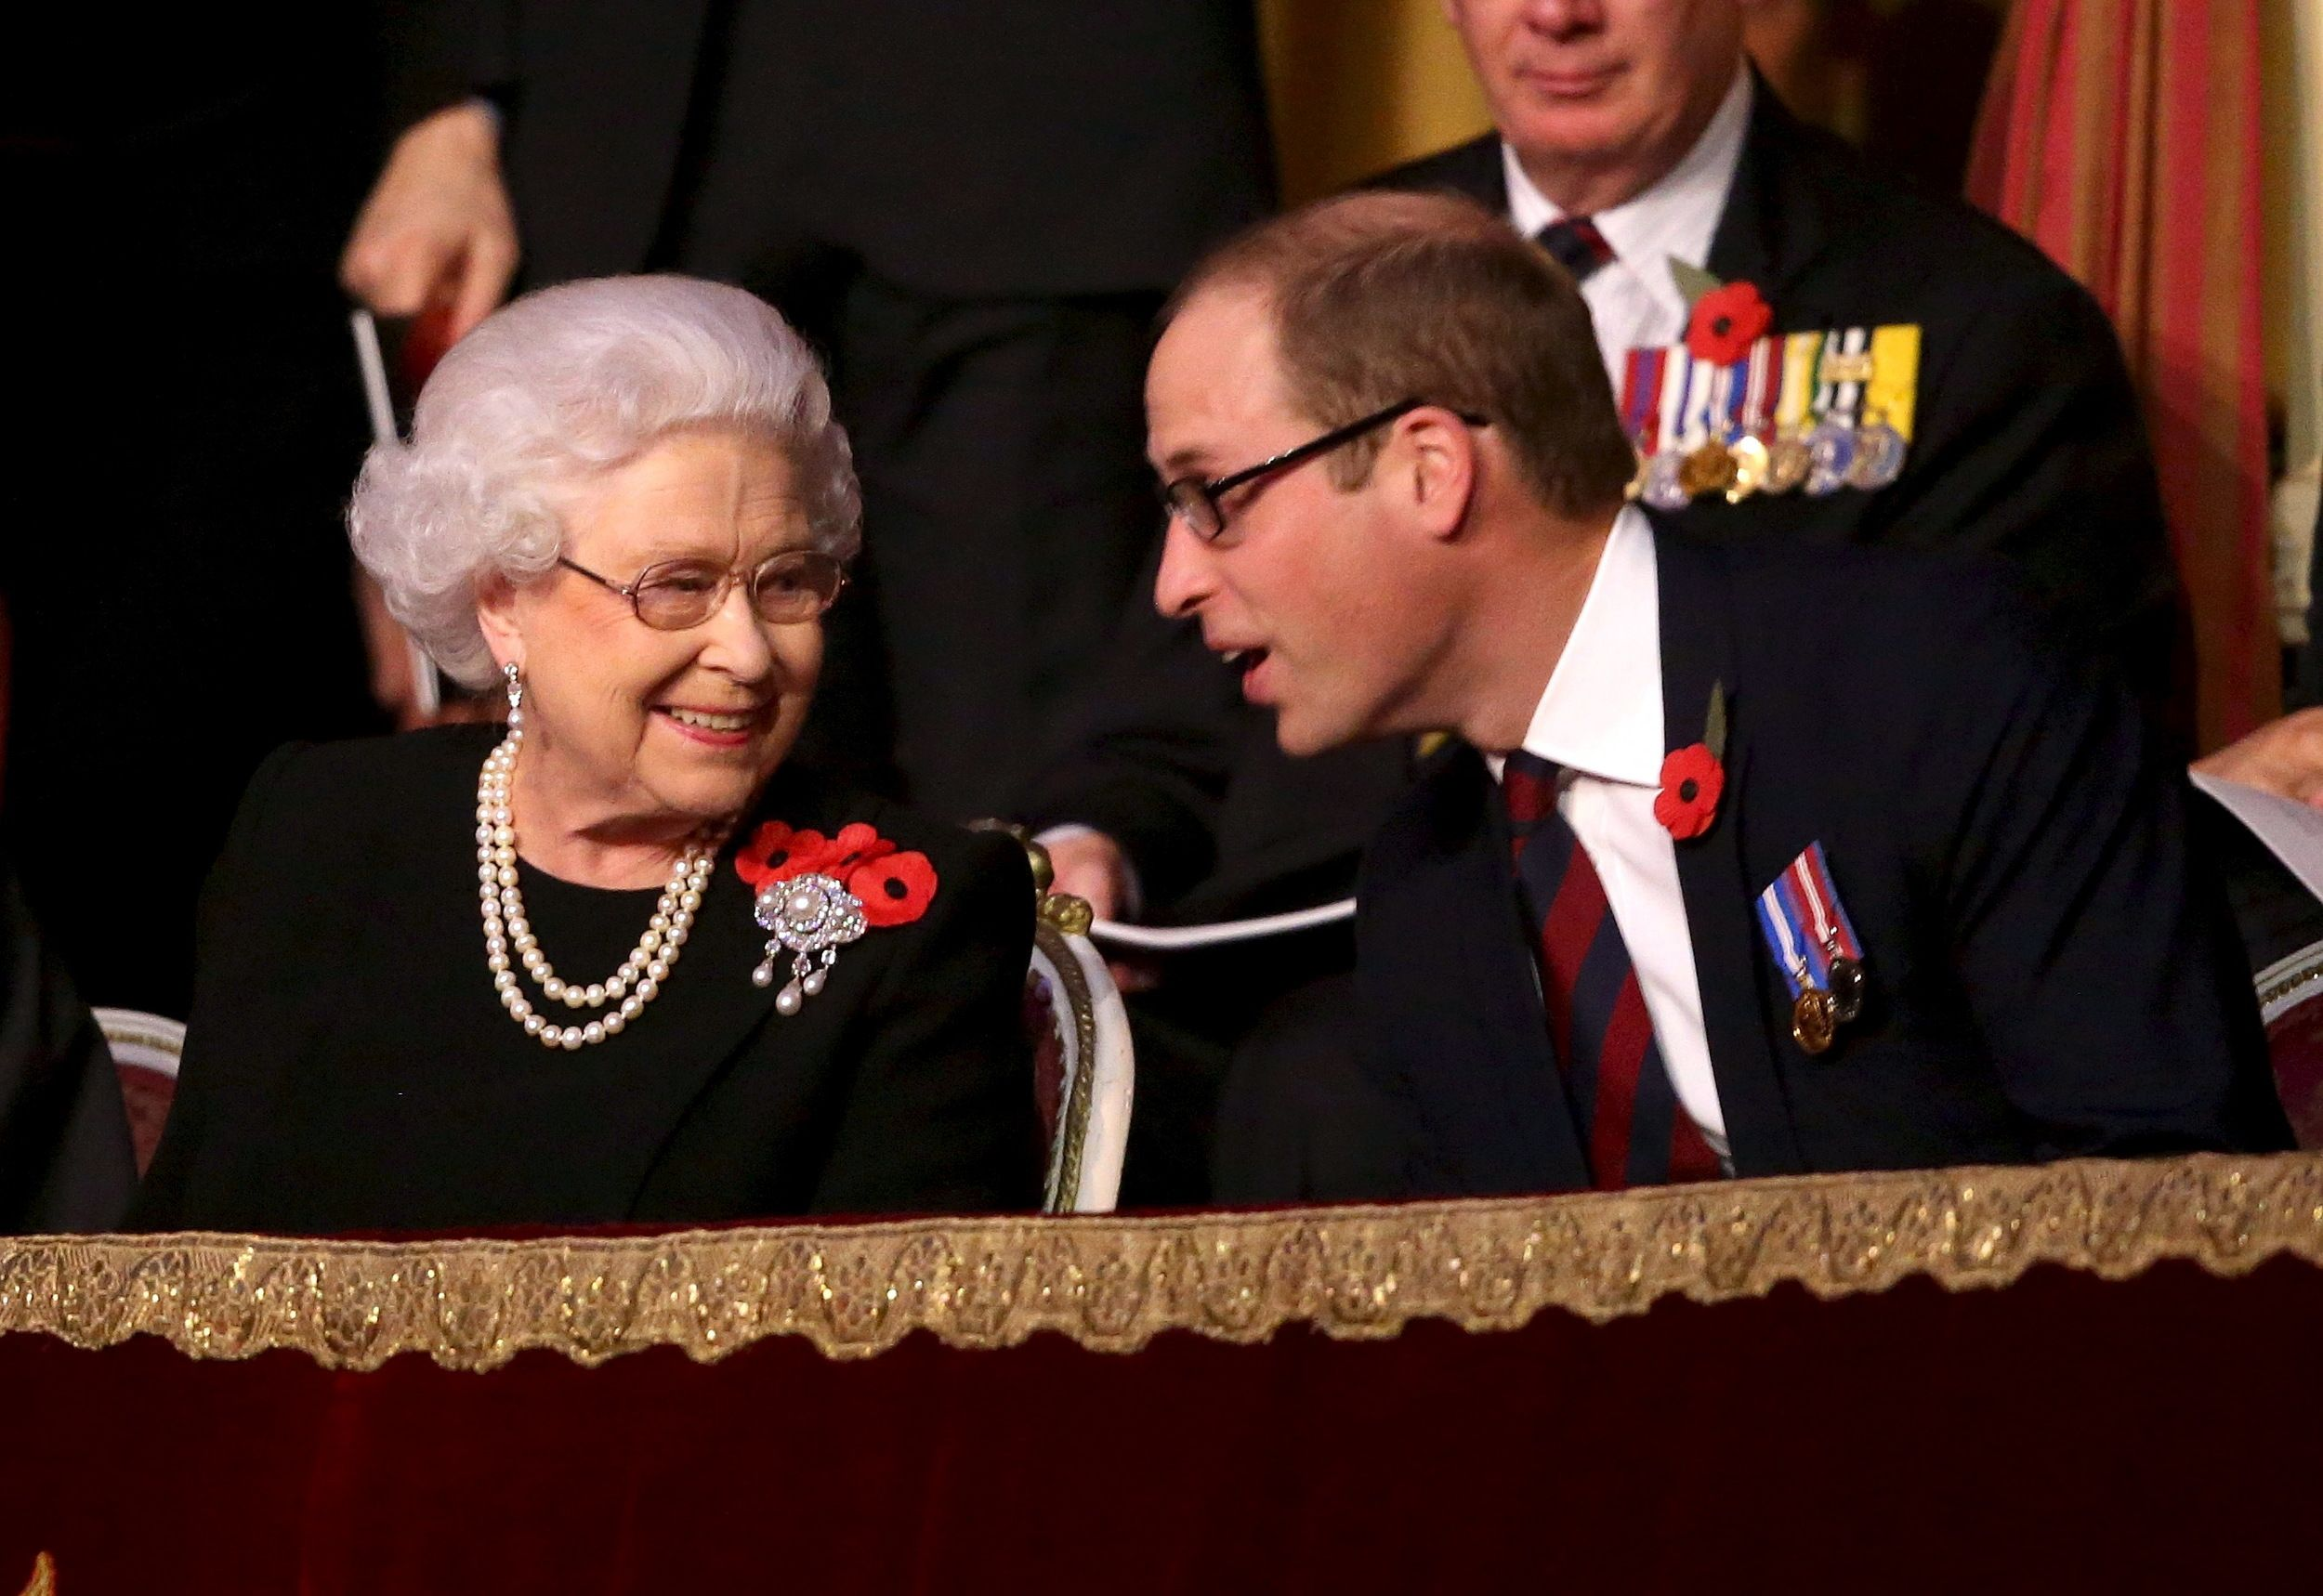 Britain's Queen Elizabeth and Prince William, Duke of Cambridge, (R) chat with each other in the Royal Box at the Royal Albert Hall during the Annual Festival of Remembrance in London November 7, 2015. REUTERS/Chris Jackson/Pool via @AOL_Lifestyle Read more: https://www.aol.com/article/entertainment/2017/06/19/prince-william-grenfell-tower-visit/22489423/?a_dgi=aolshare_pinterest#fullscreen